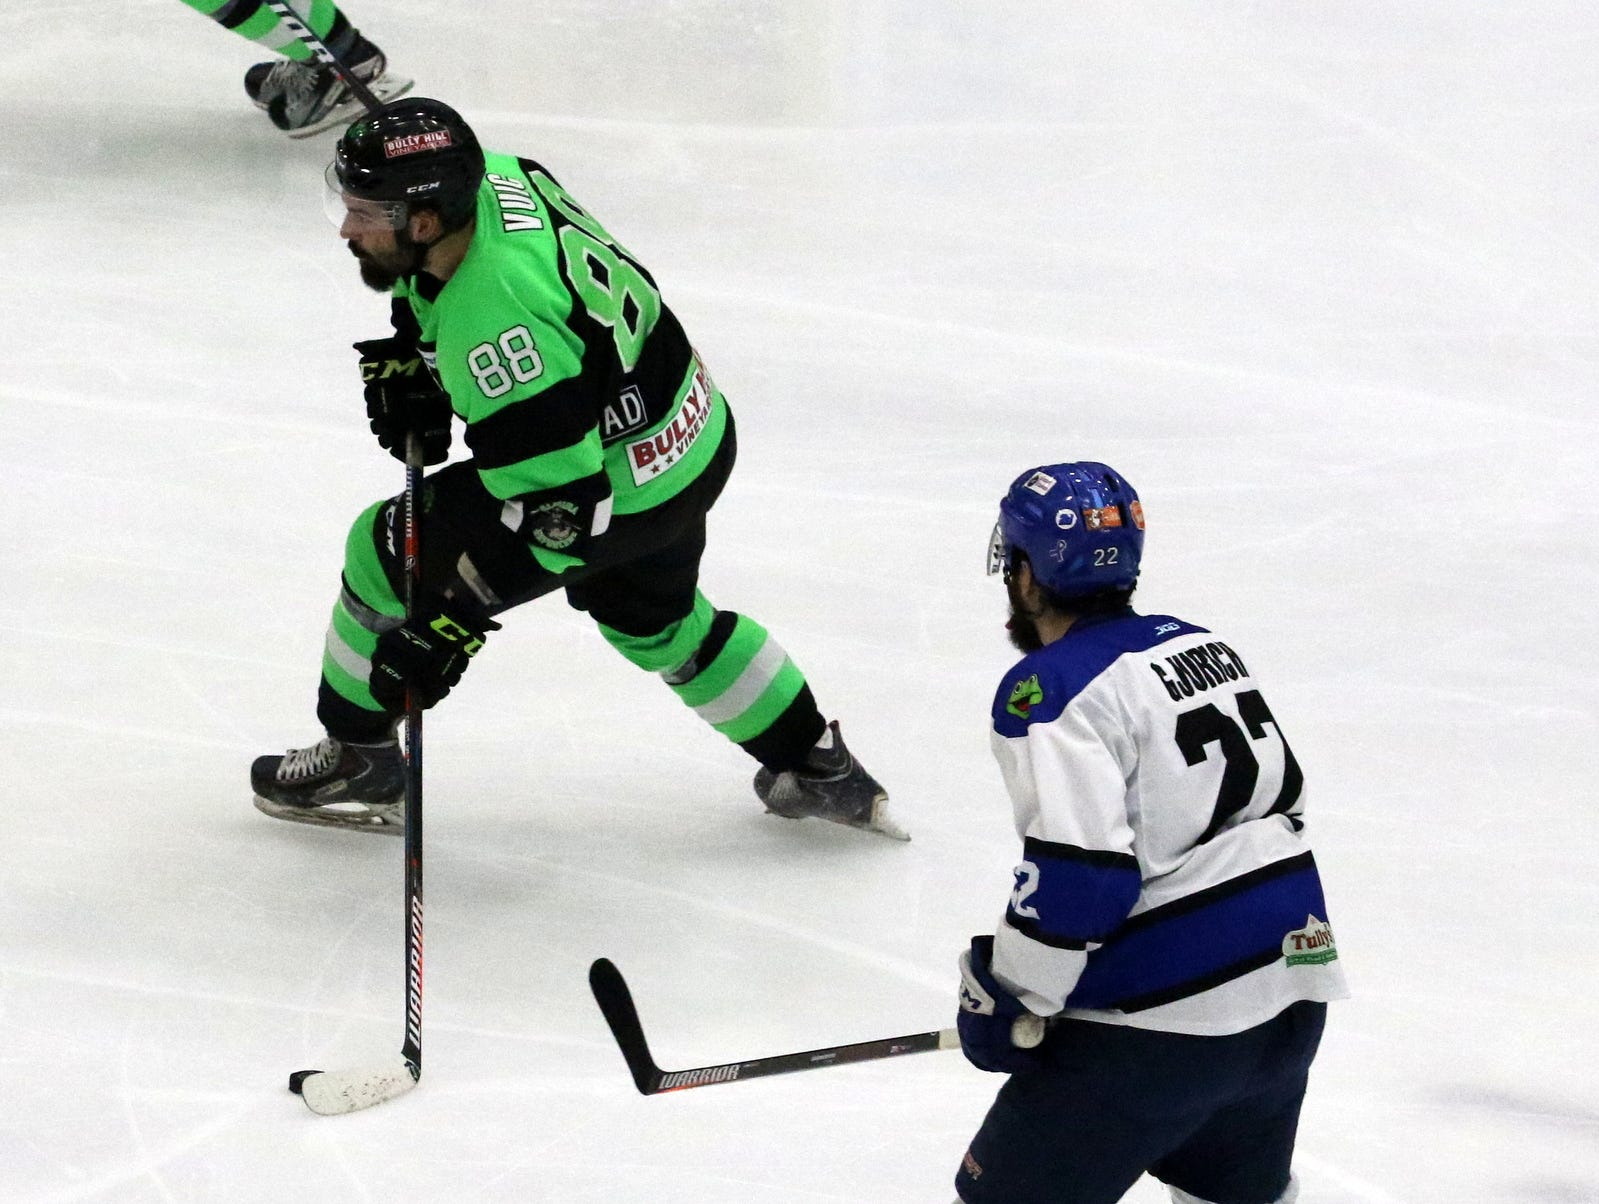 Action from Game 2 of the Federal Hockey League semifinal series between the Elmira Enforcers and Watertown Wolves on April 13, 2019 at Elmira's First Arena.